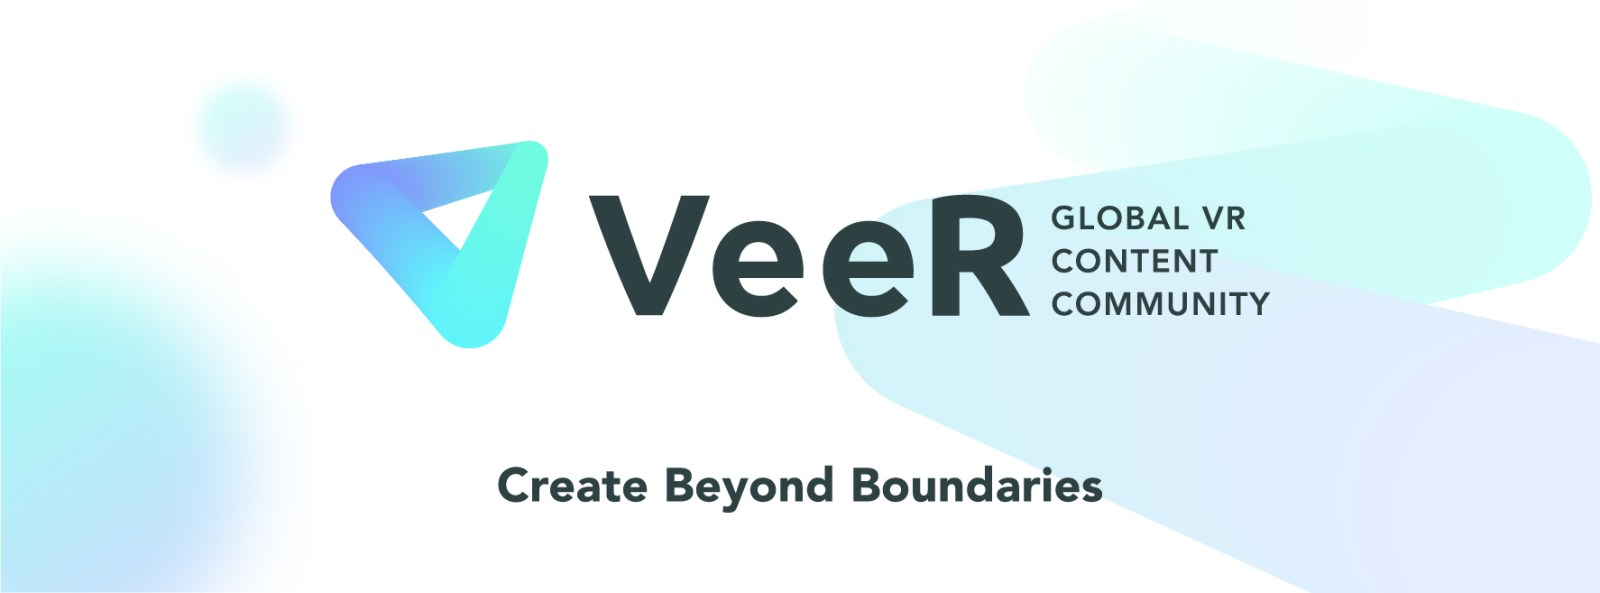 Introducing VeeR 2.0 – Create beyond boundaries